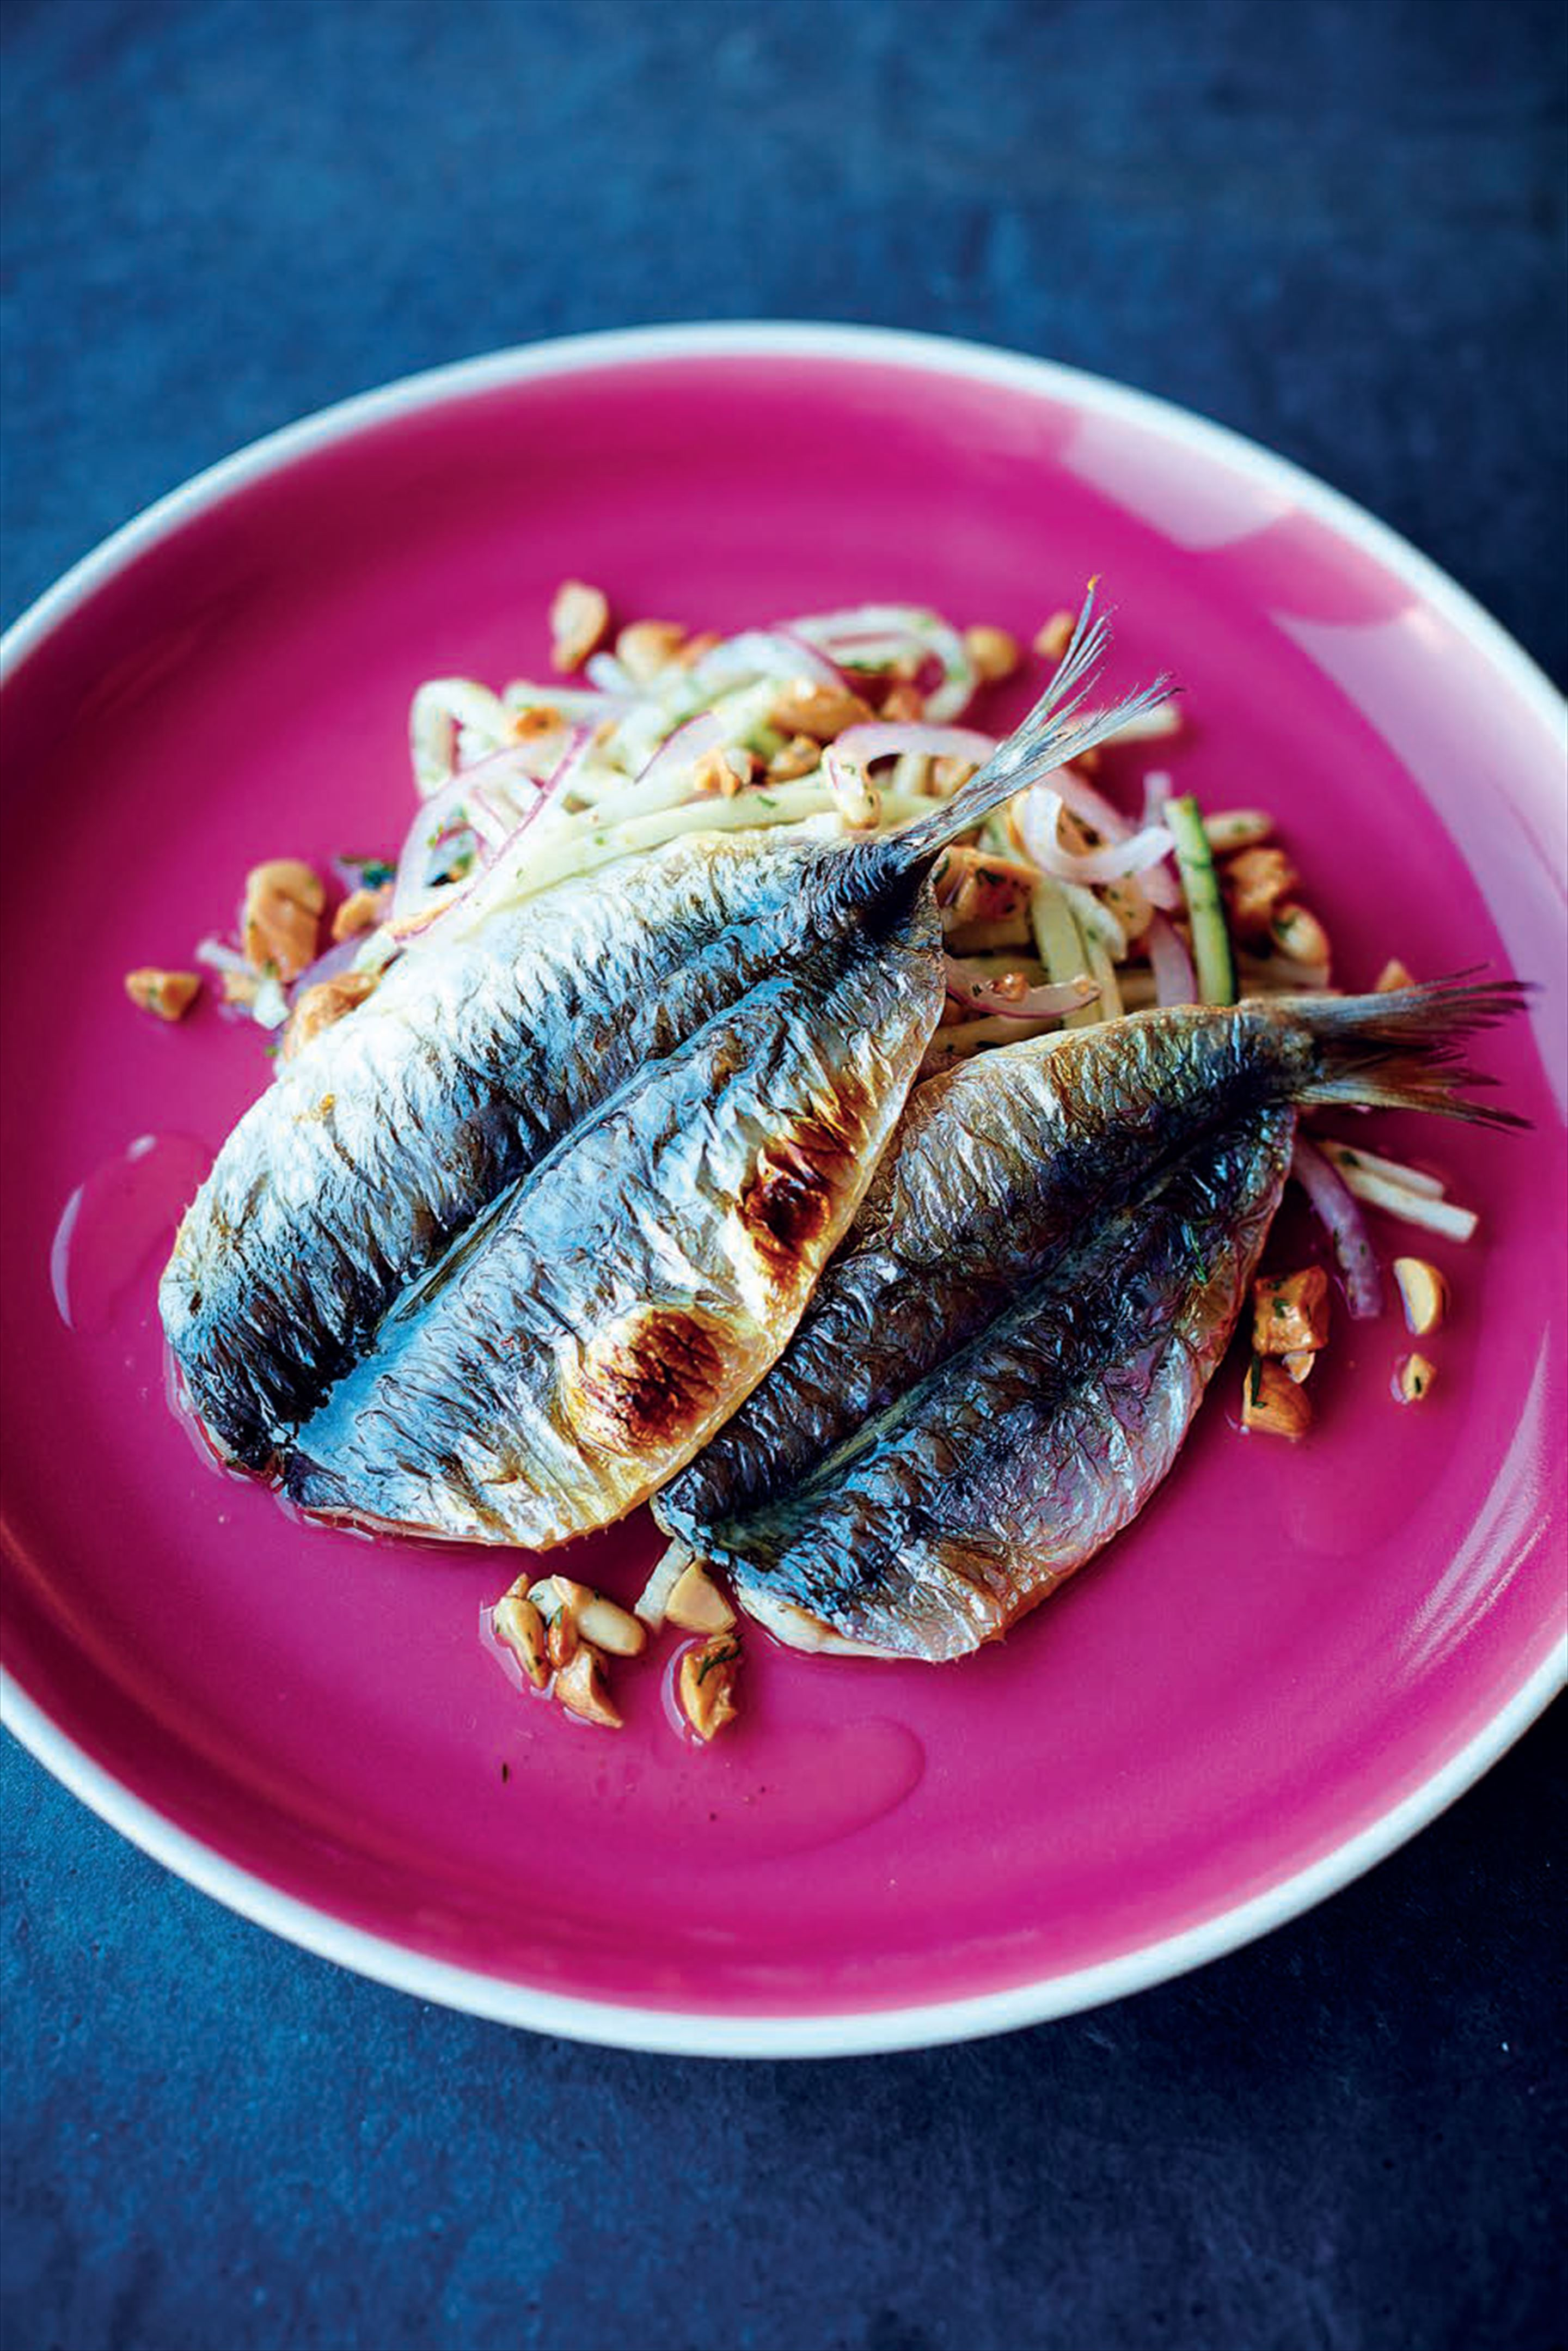 Sardines with courgette and nut salad